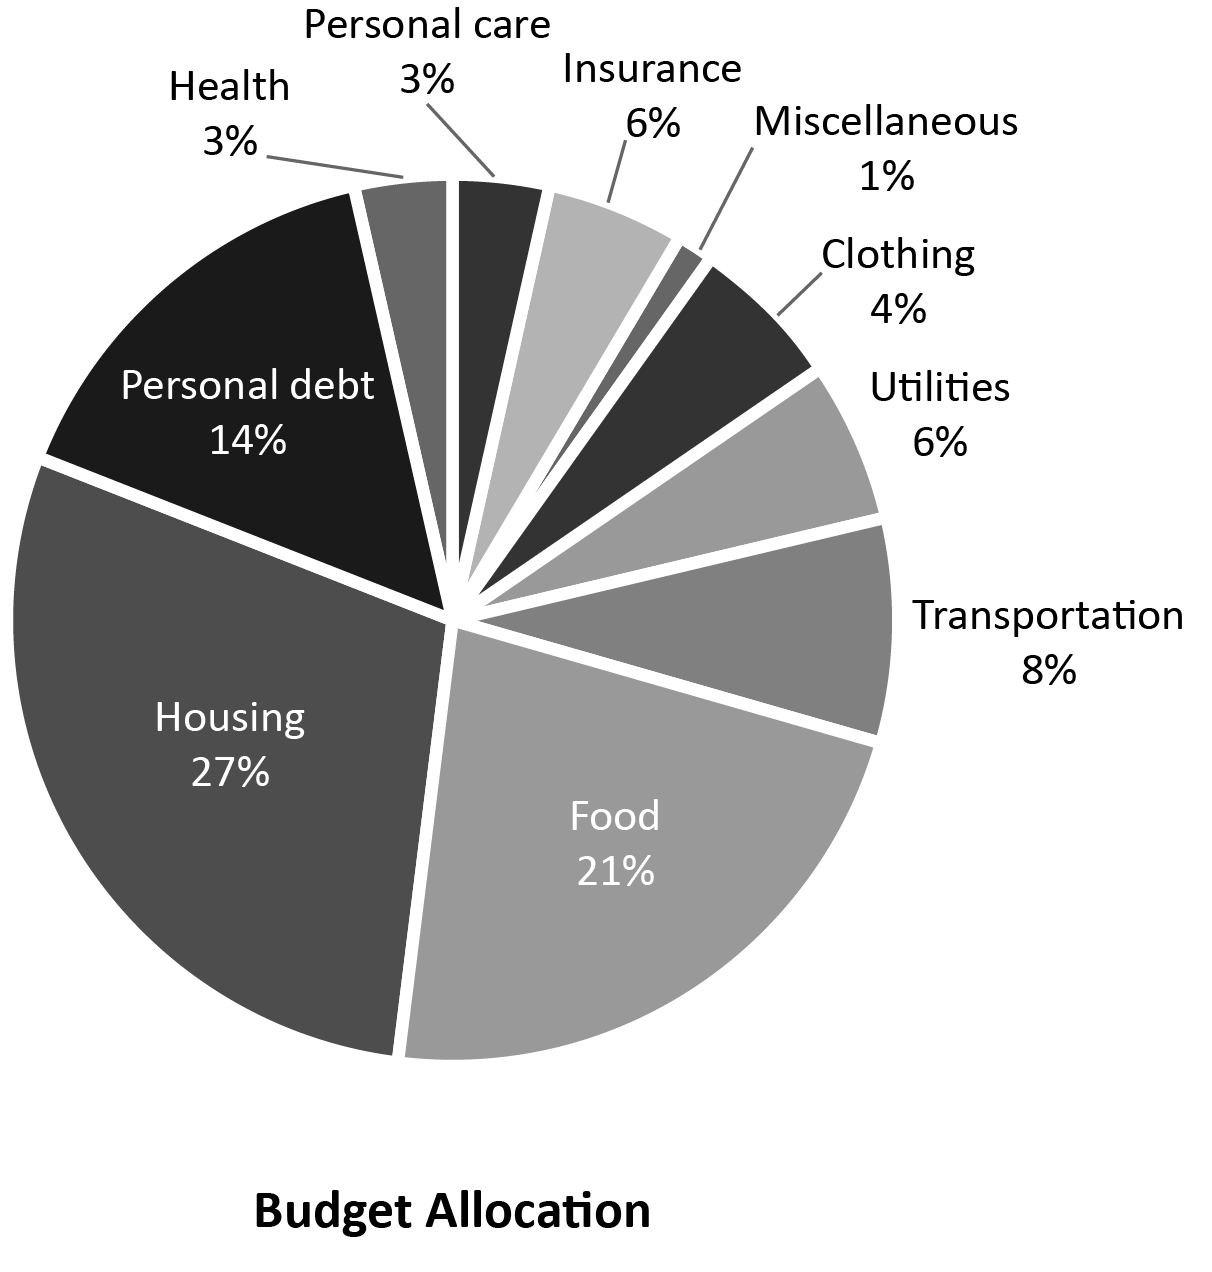 Budget Allocation pie chart among: Health, Personal Care, Insurance, Miscellaneous, Clothing, Utilities, Transportation, Food, Housing and Personal Debt